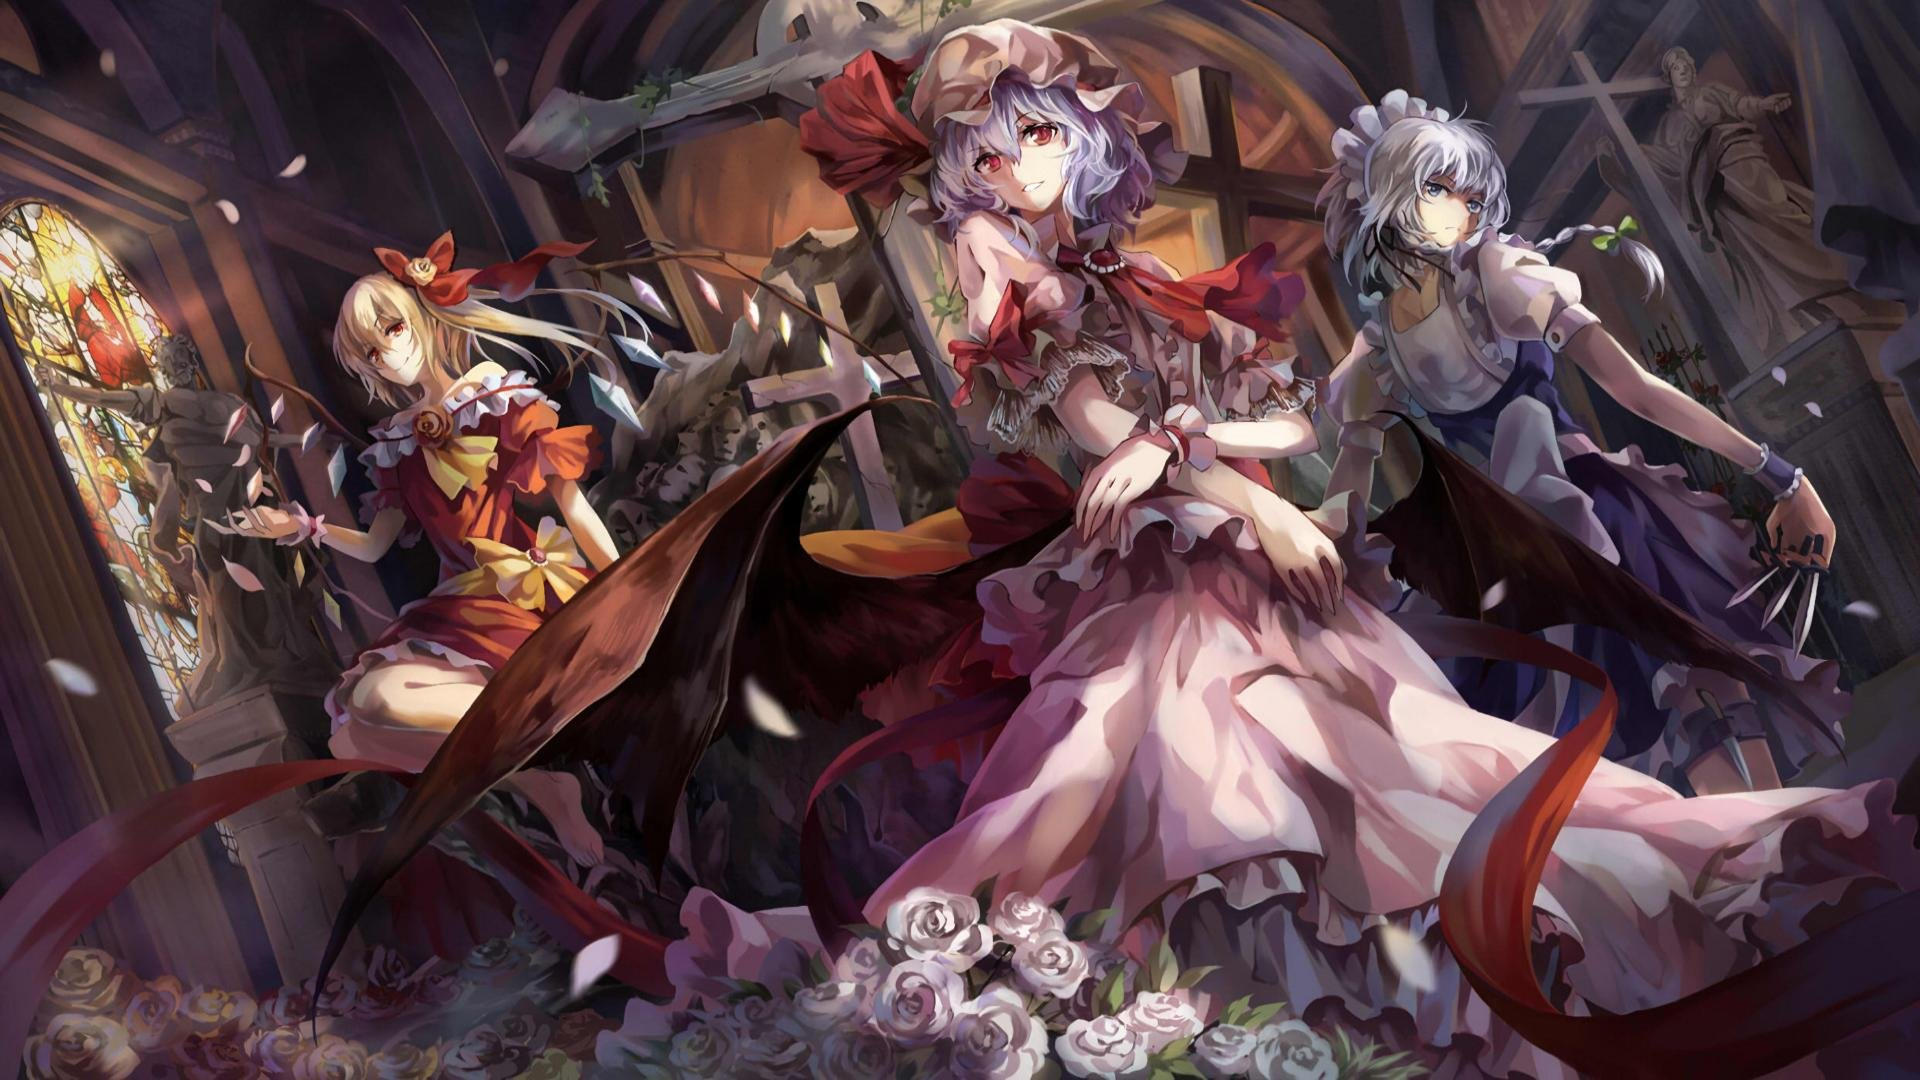 Download full hd 1920x1080 Touhou PC wallpaper ID:220059 for free